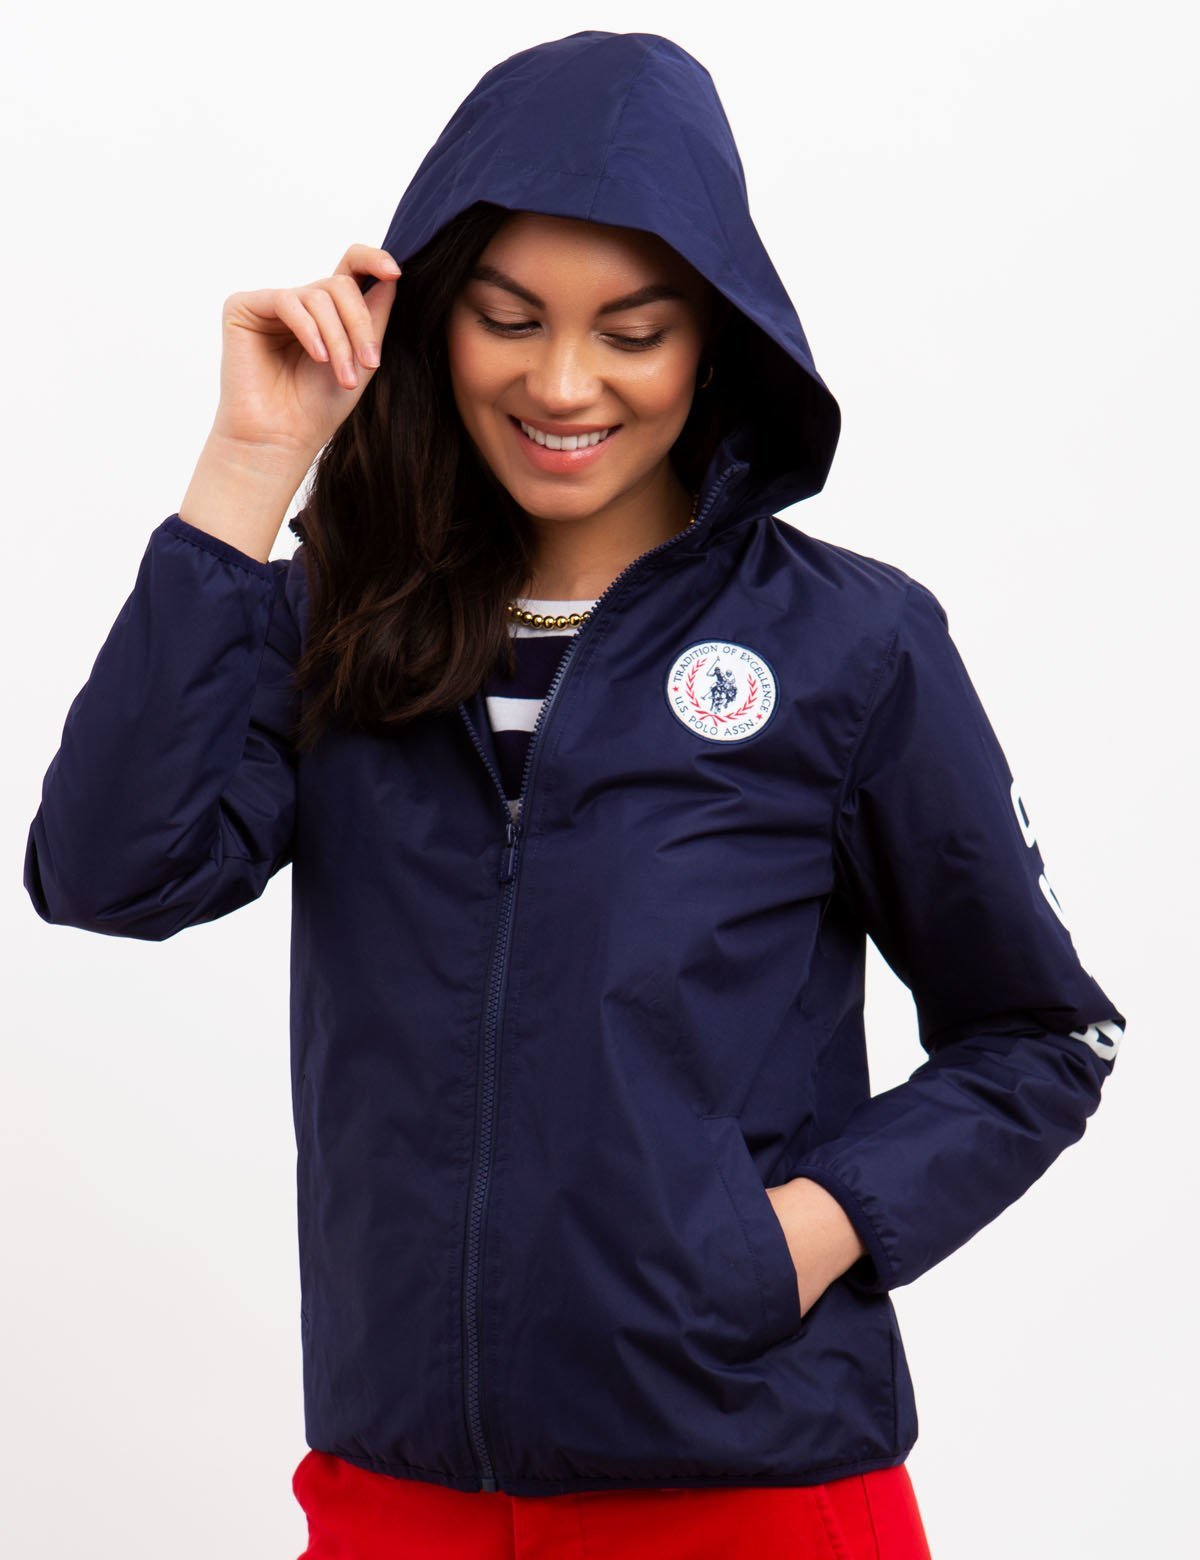 USPA LOGO JACKET WITH HOOD - U.S. Polo Assn.